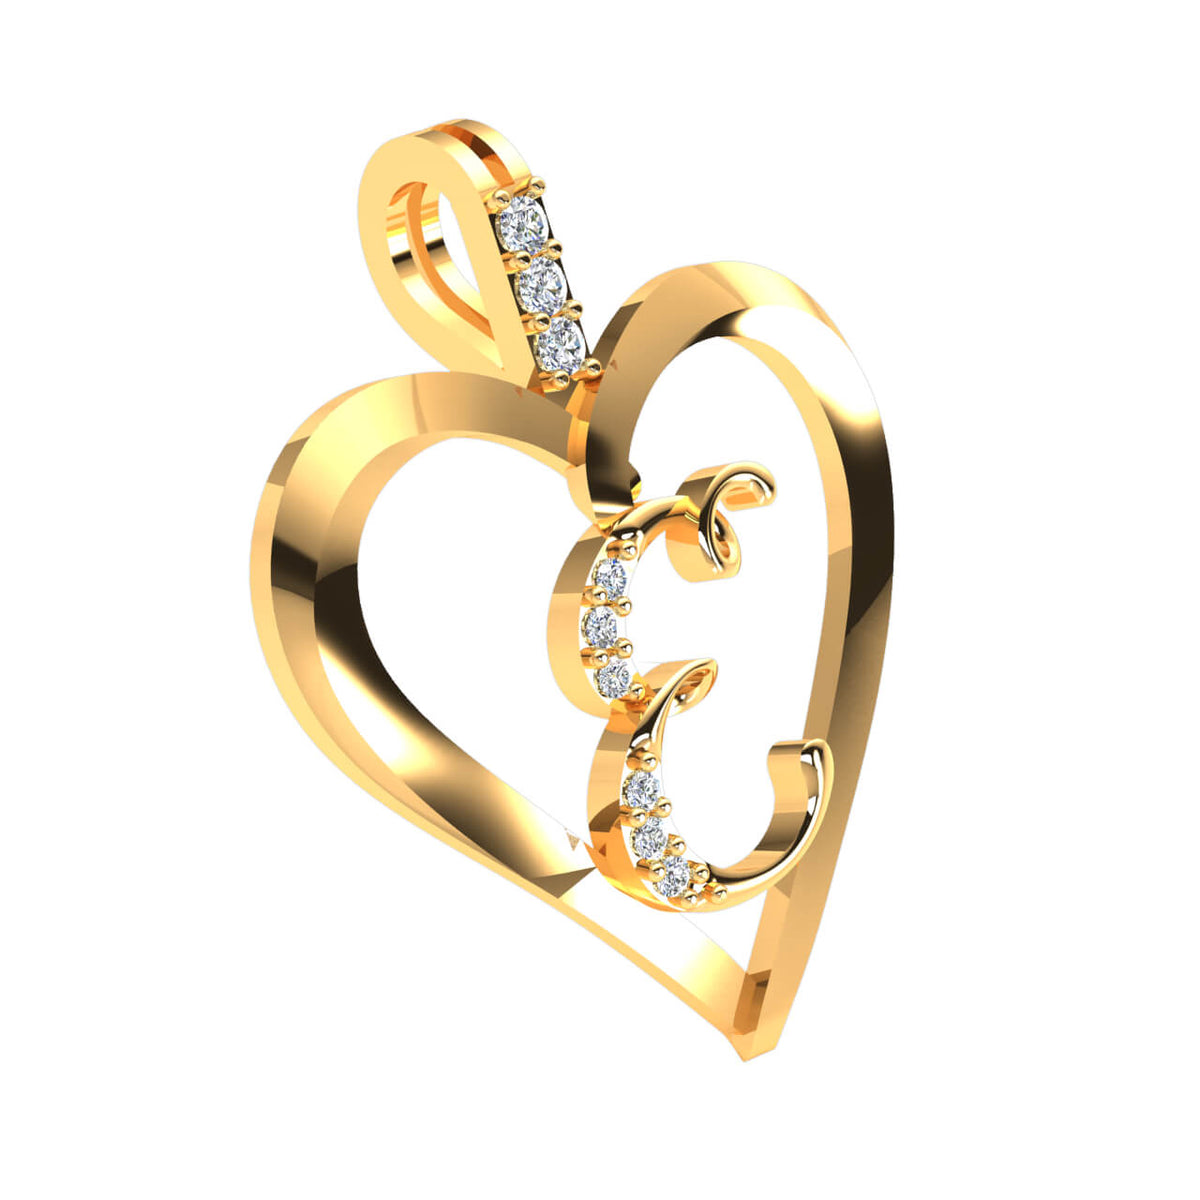 0.07 Ct Heart Initial Pendant For Adults Round FG VS Diamond 14k Gold